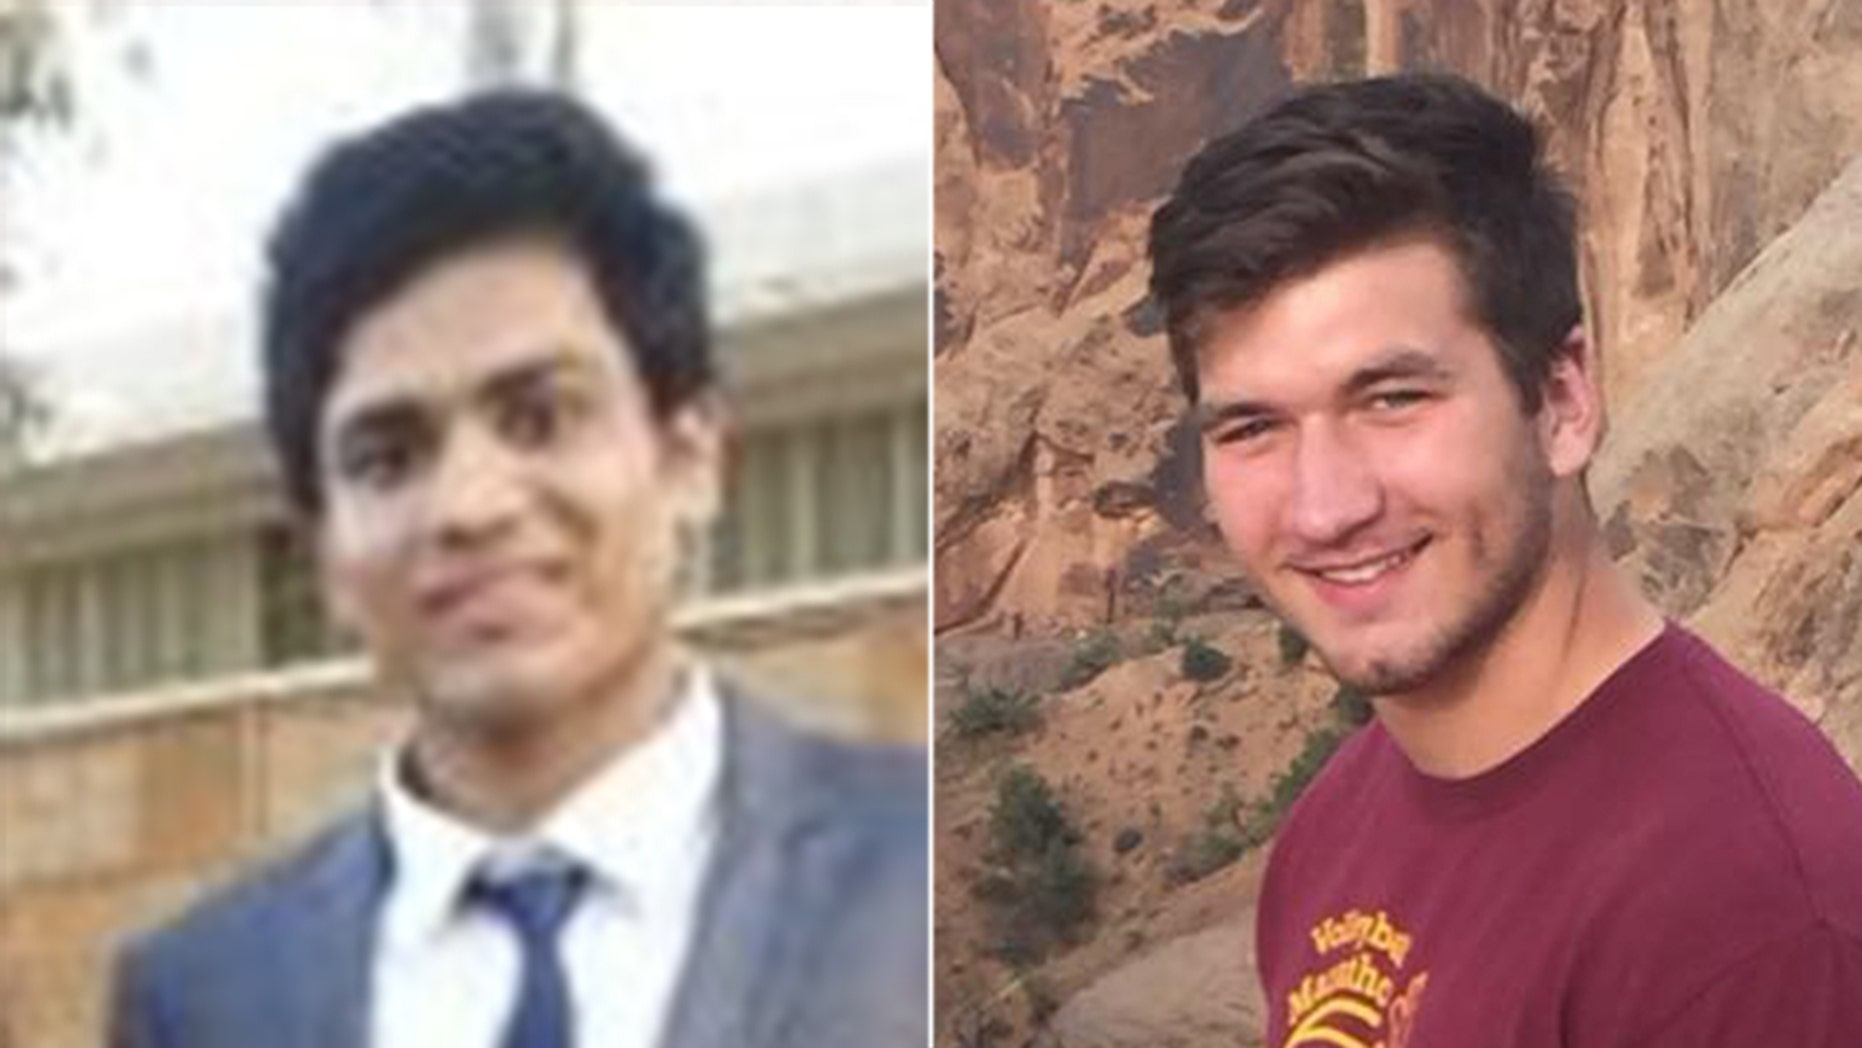 Akash S. Taneja, left, and Kyle Gotchel were both found dead on the Rutgers University campus.